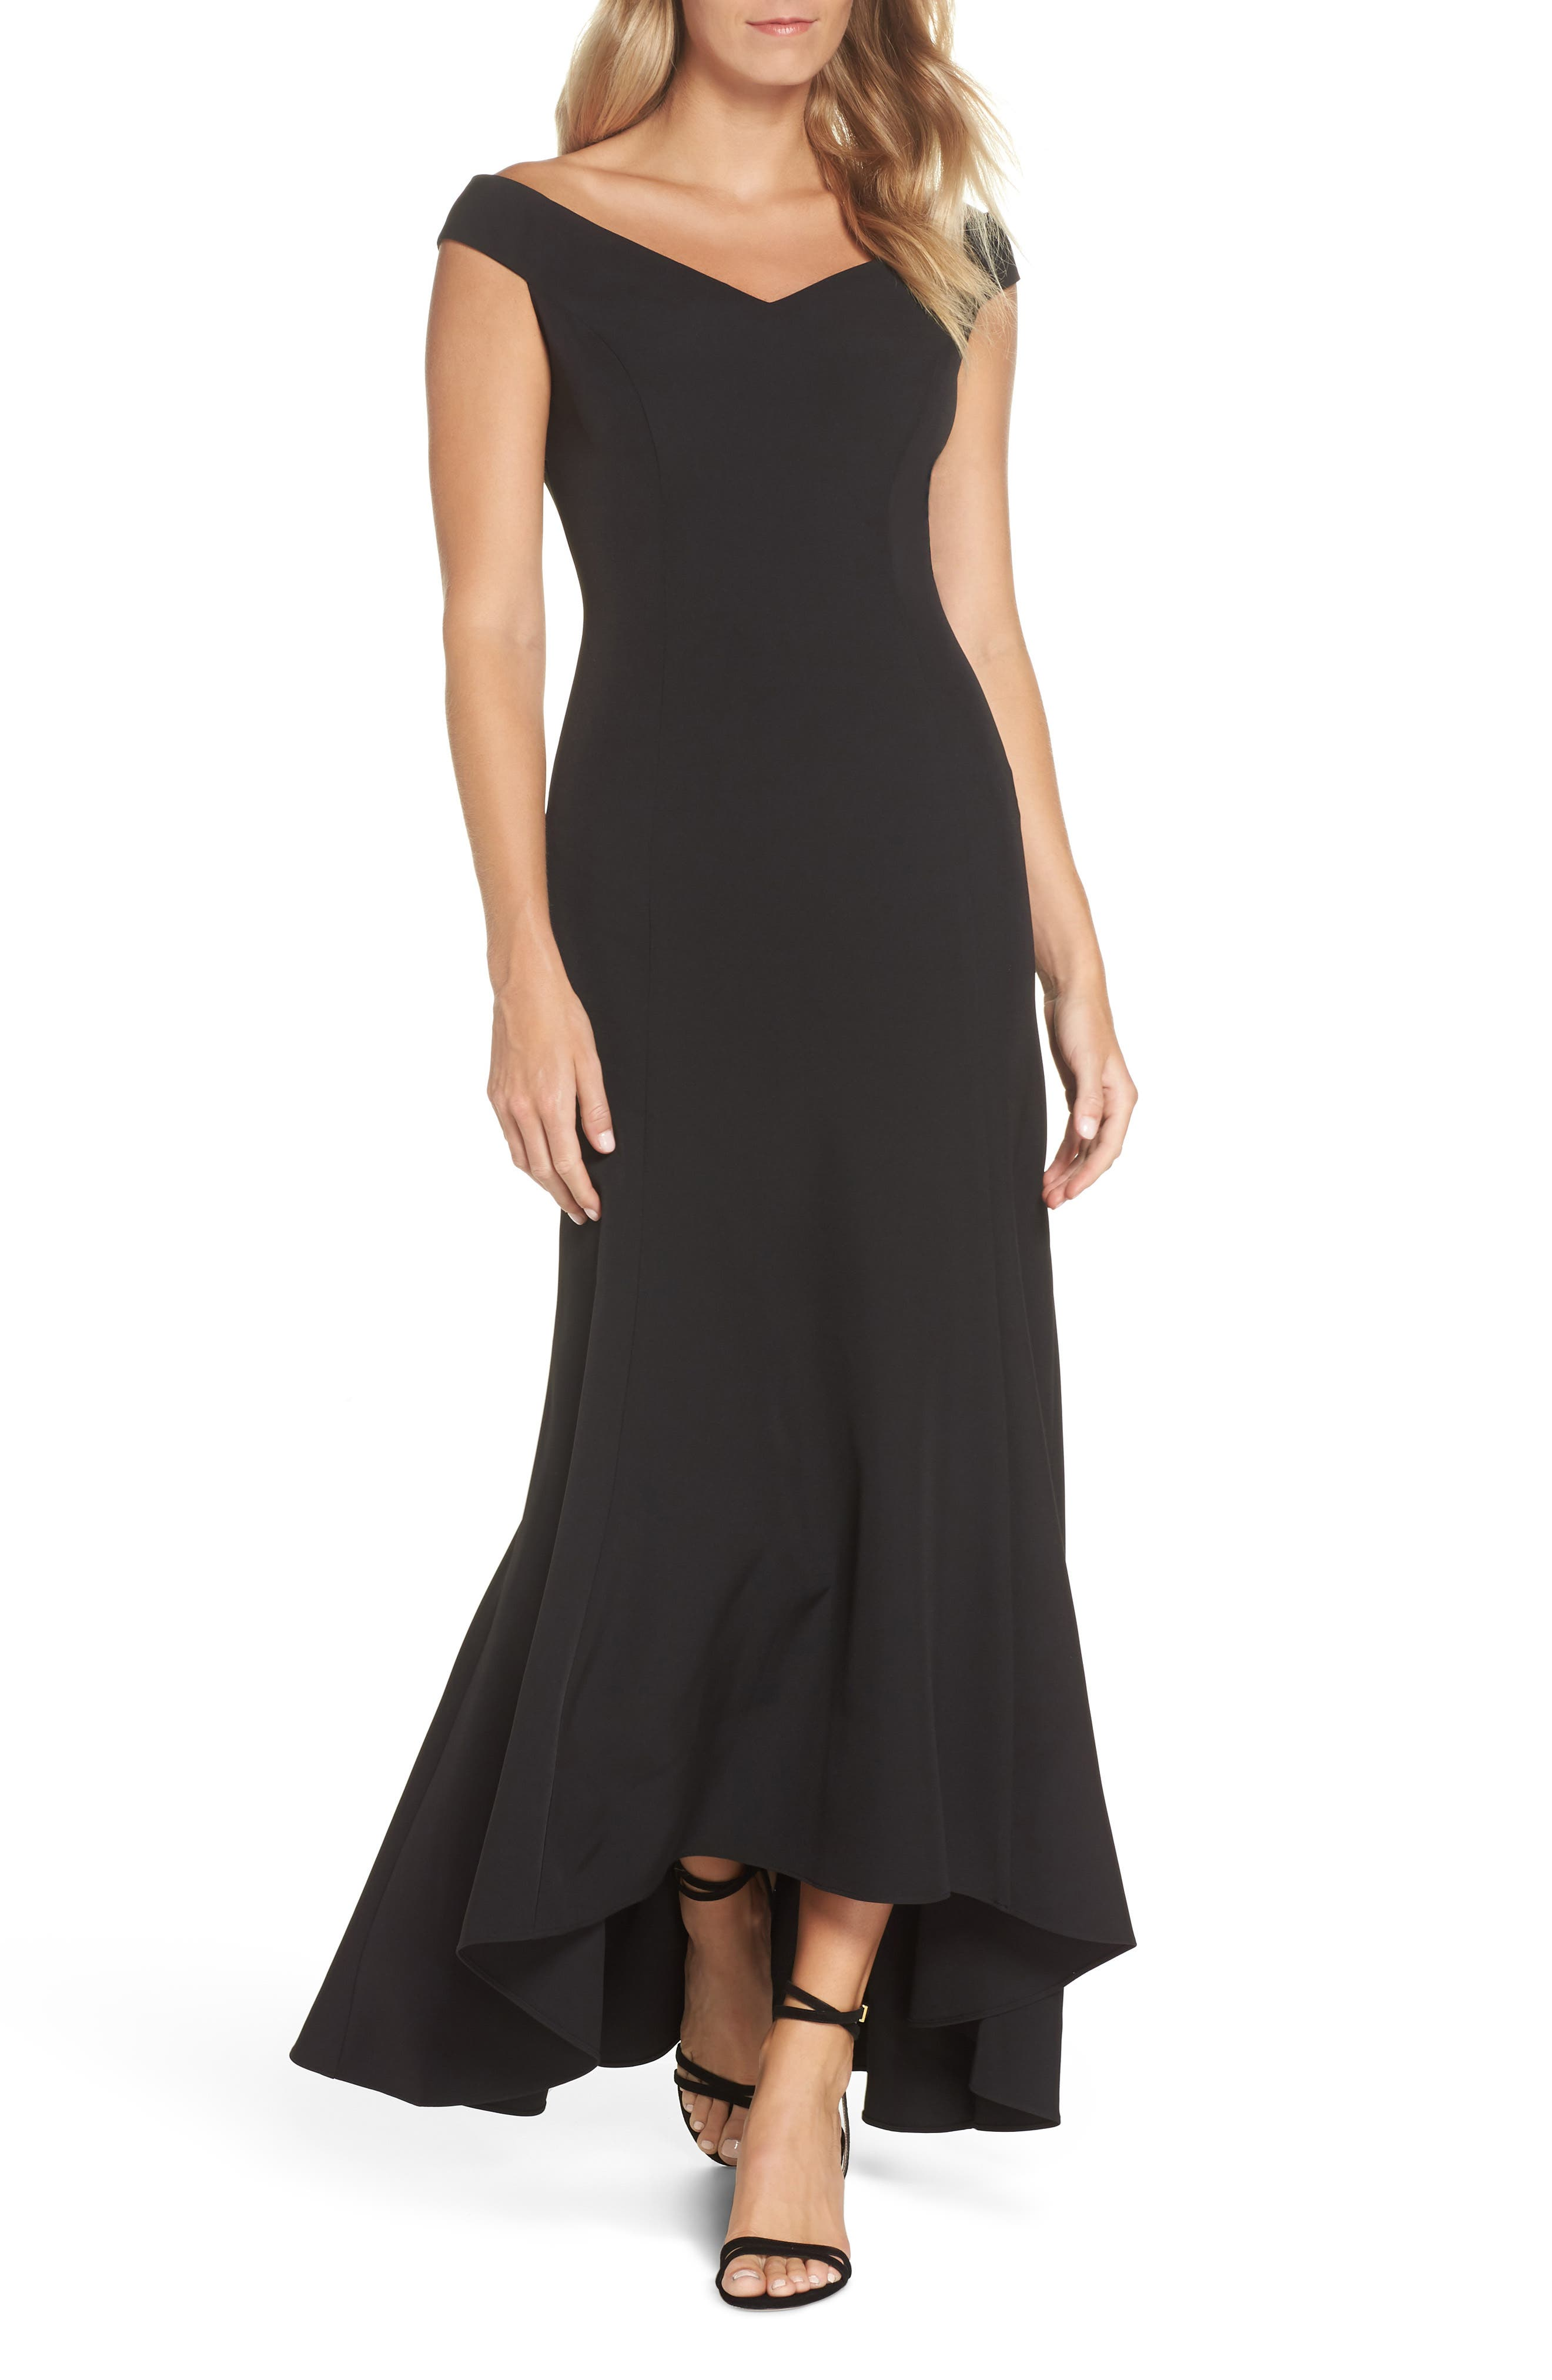 Vince Camuto Off The Shoulder Trumpet Dress, Black